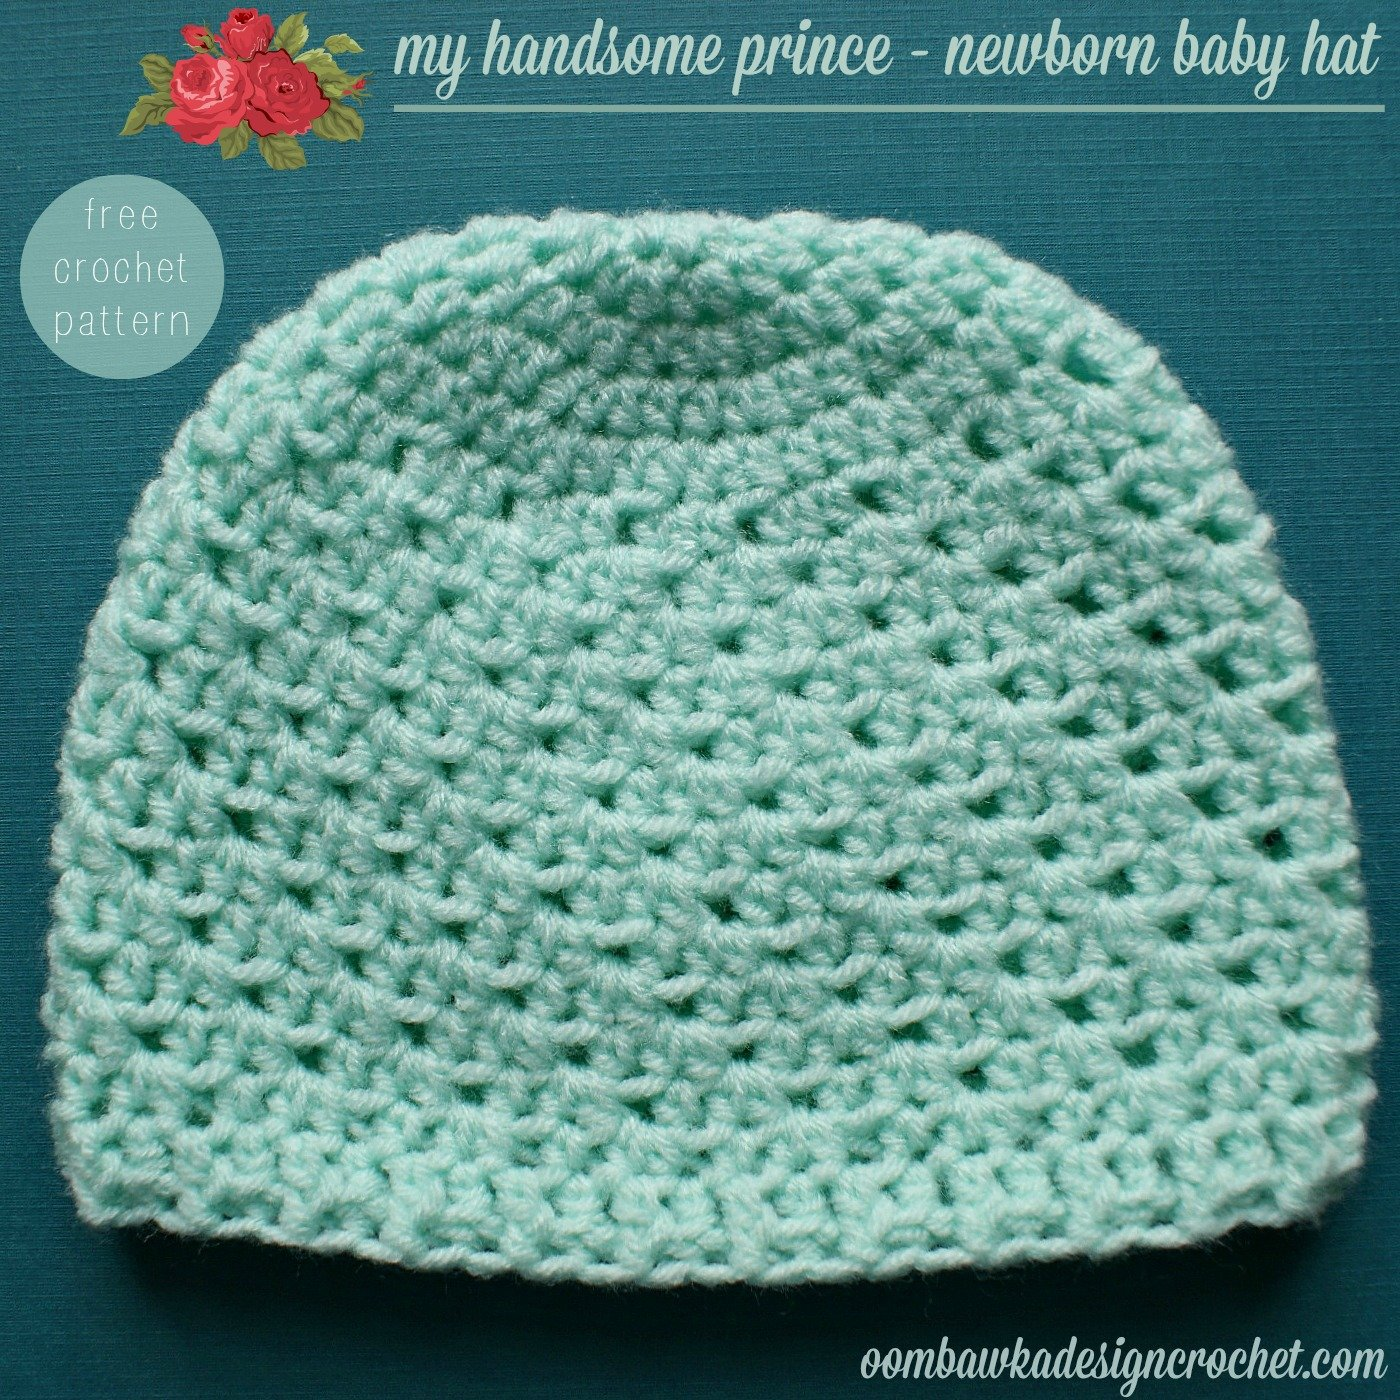 Free Crochet Pattern For Infant Hat : My Handsome Prince Newborn Baby Hat Oombawka Design Crochet